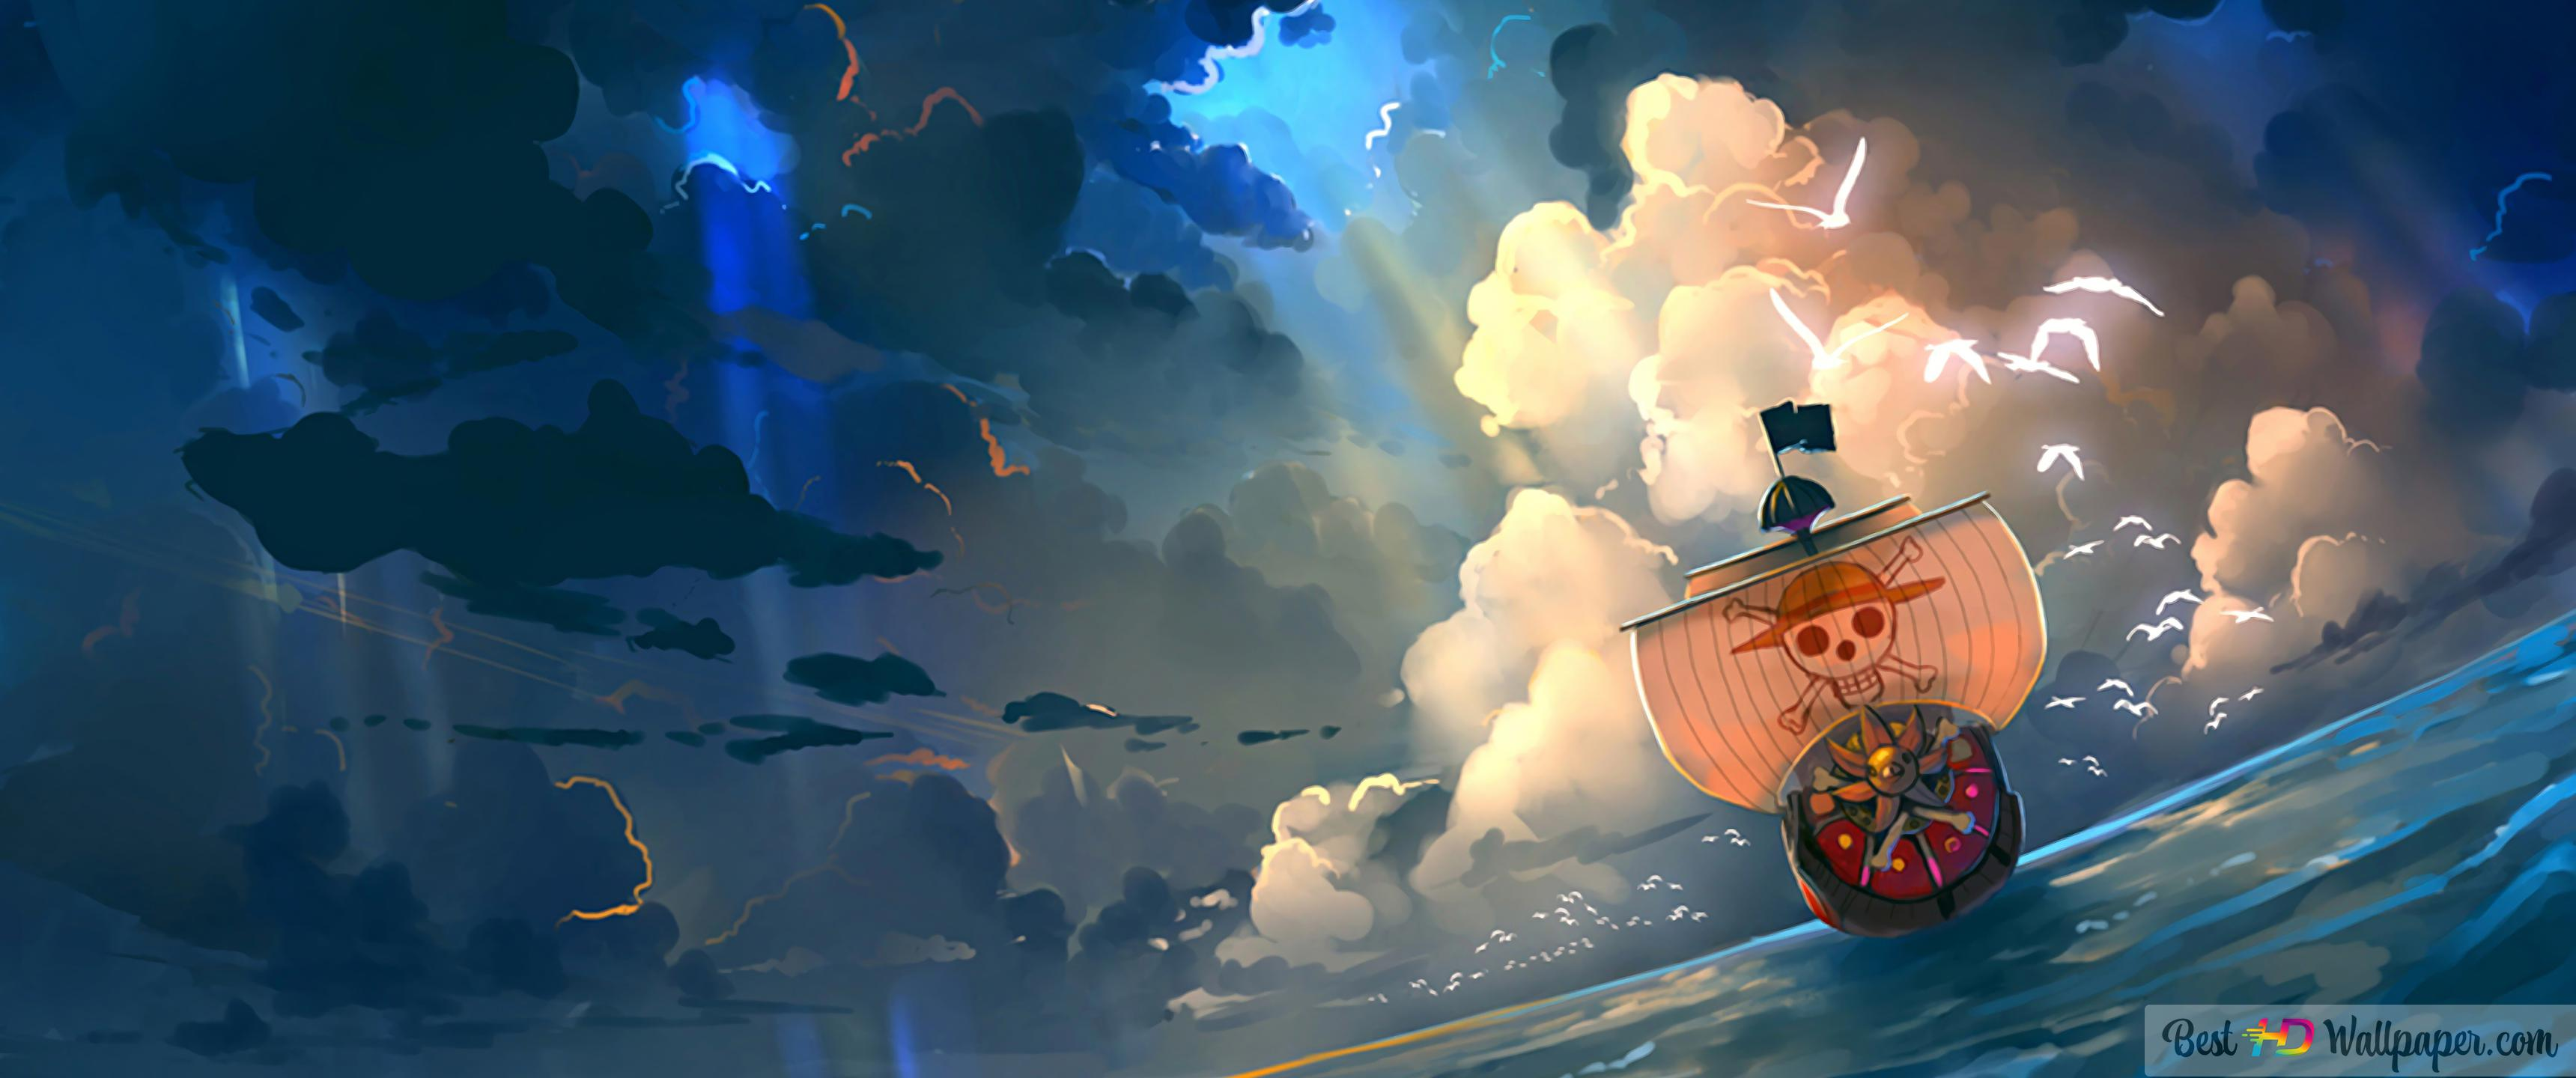 One Piece - Thousand Sunny HD wallpaper